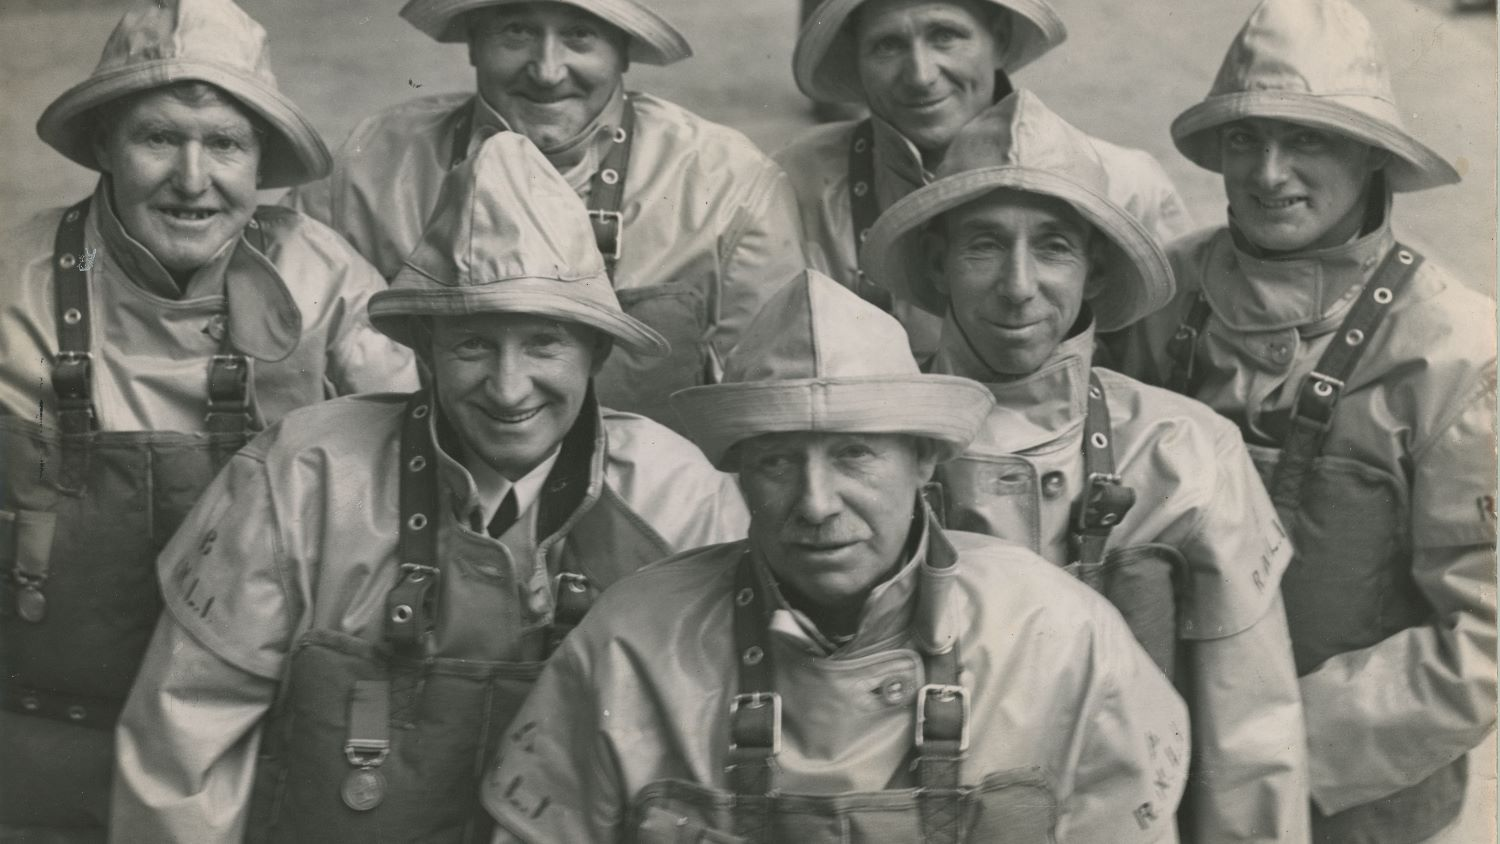 Black and white image of seven men in crew kit with medals